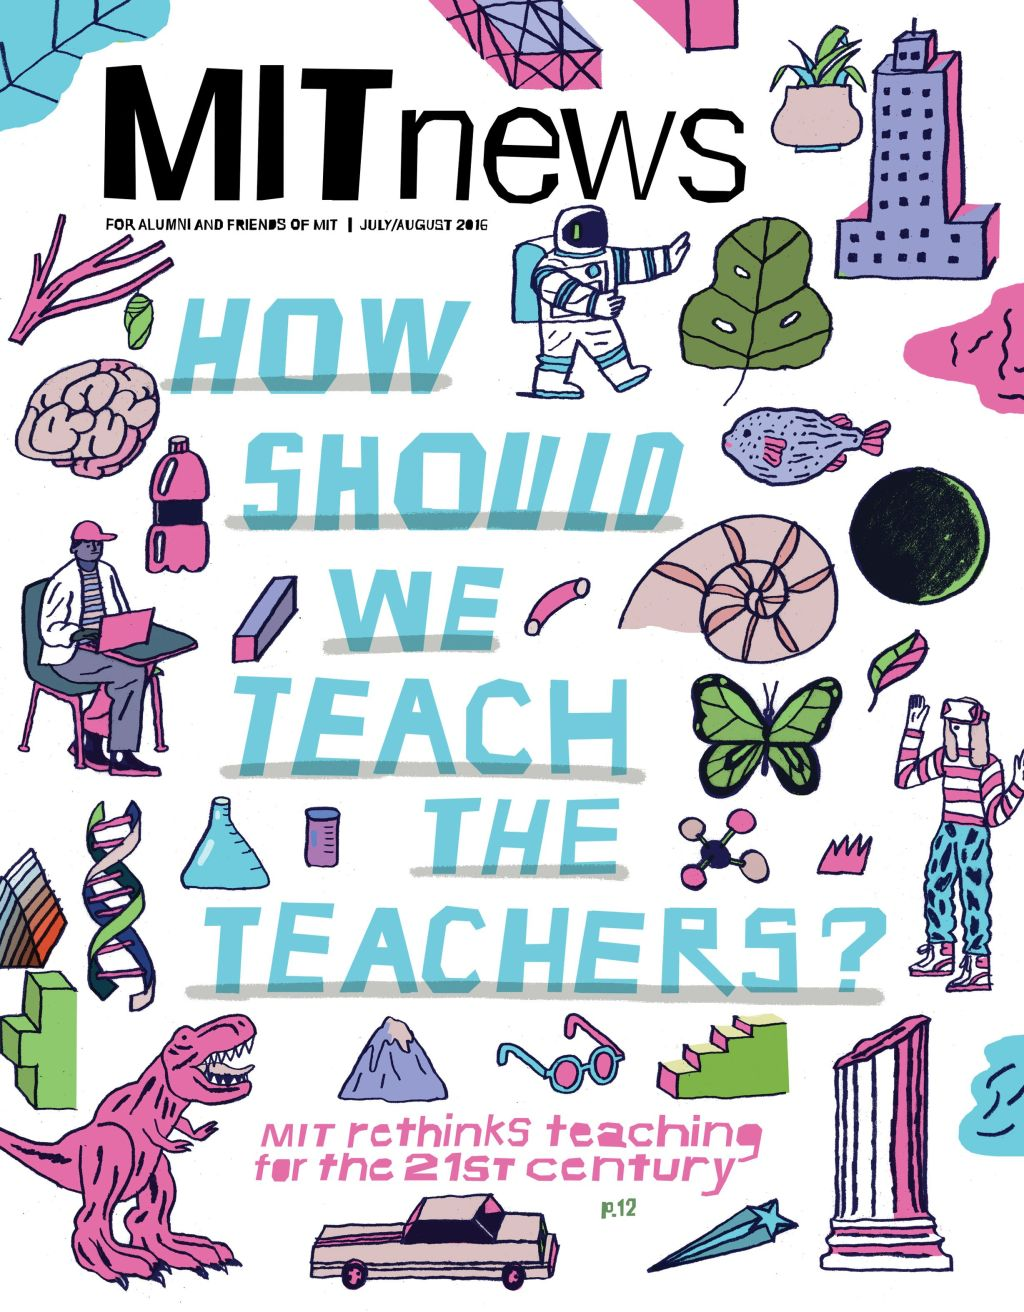 How Should We Teach the Teachers?